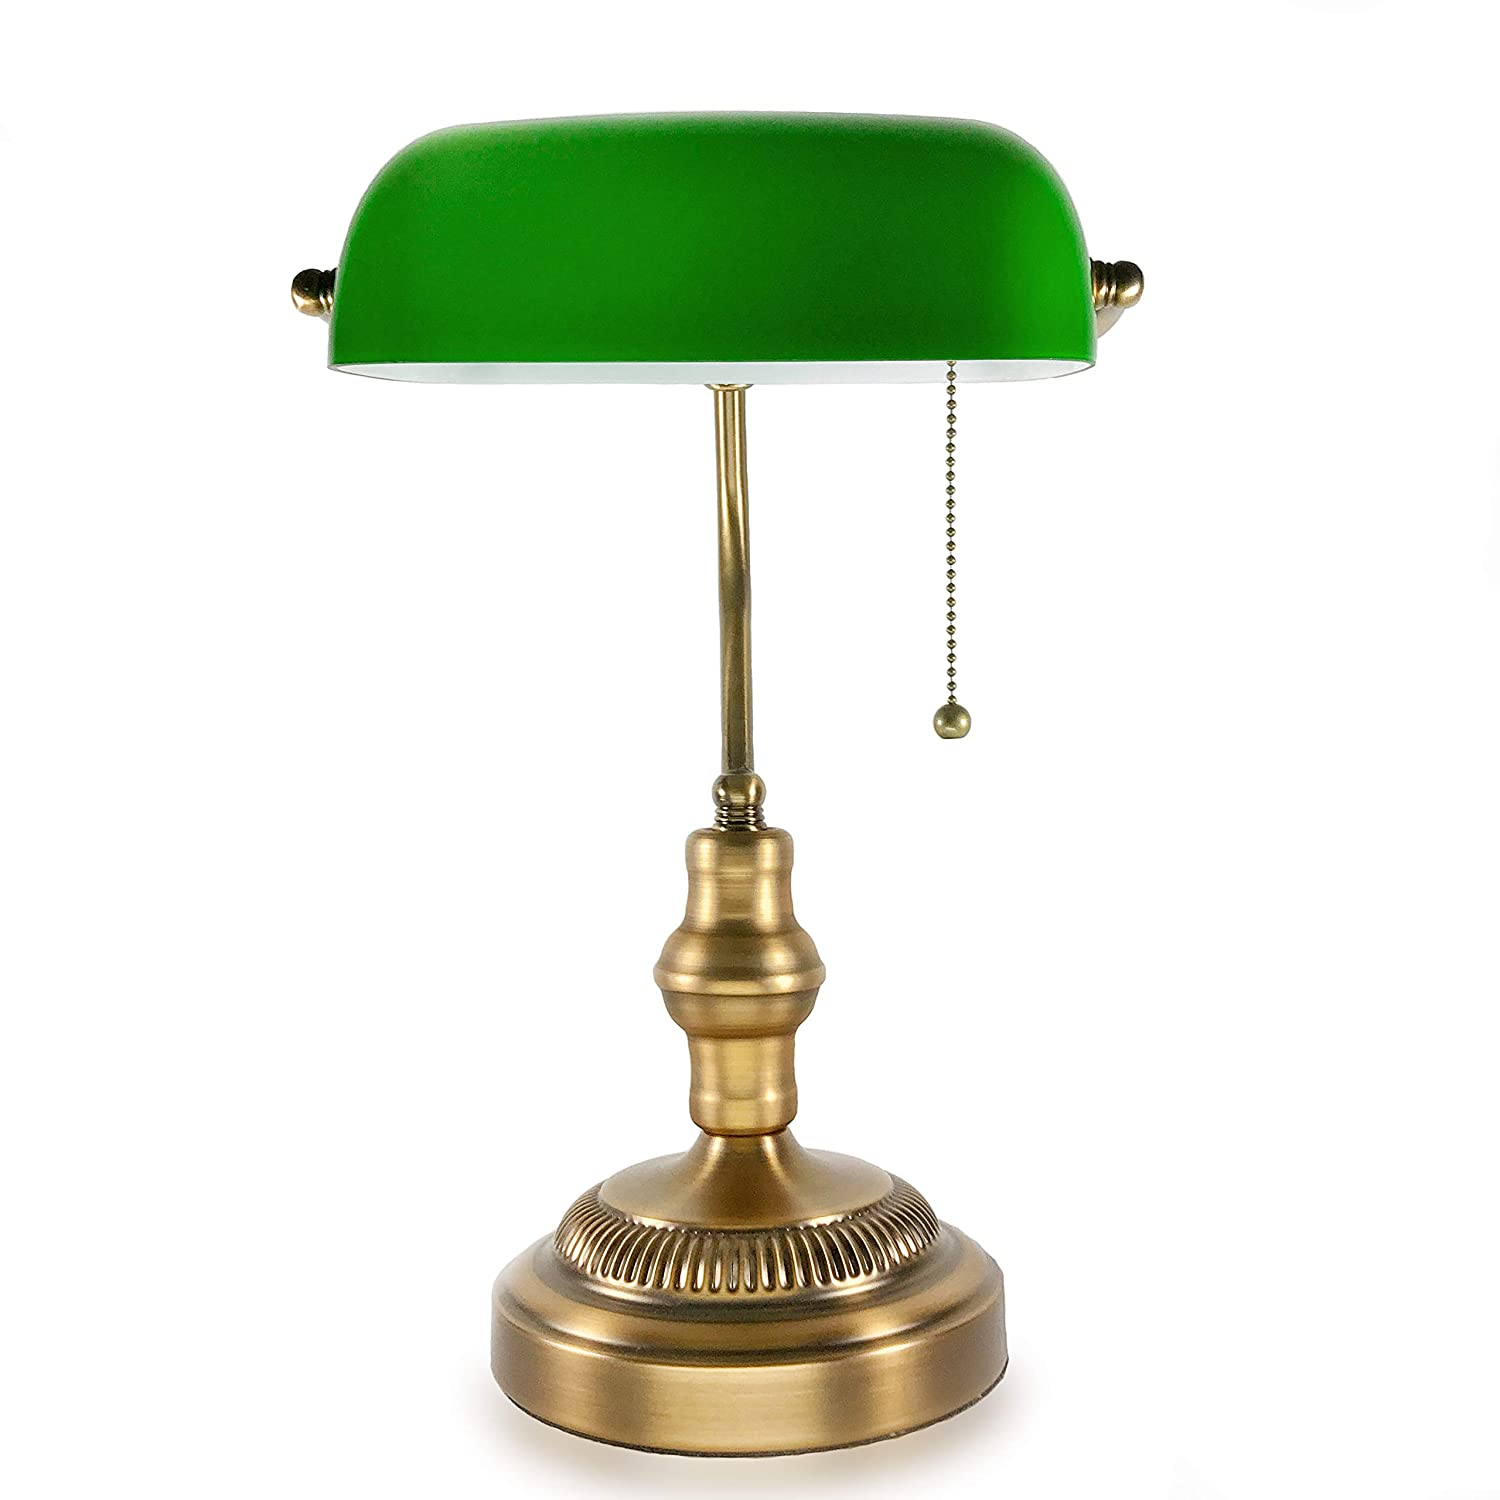 info for 00c8a a9722 Details about Traditional Bankers Lamp, Brass Base, Handmade Emerald Green  Glass Shade,Vintage